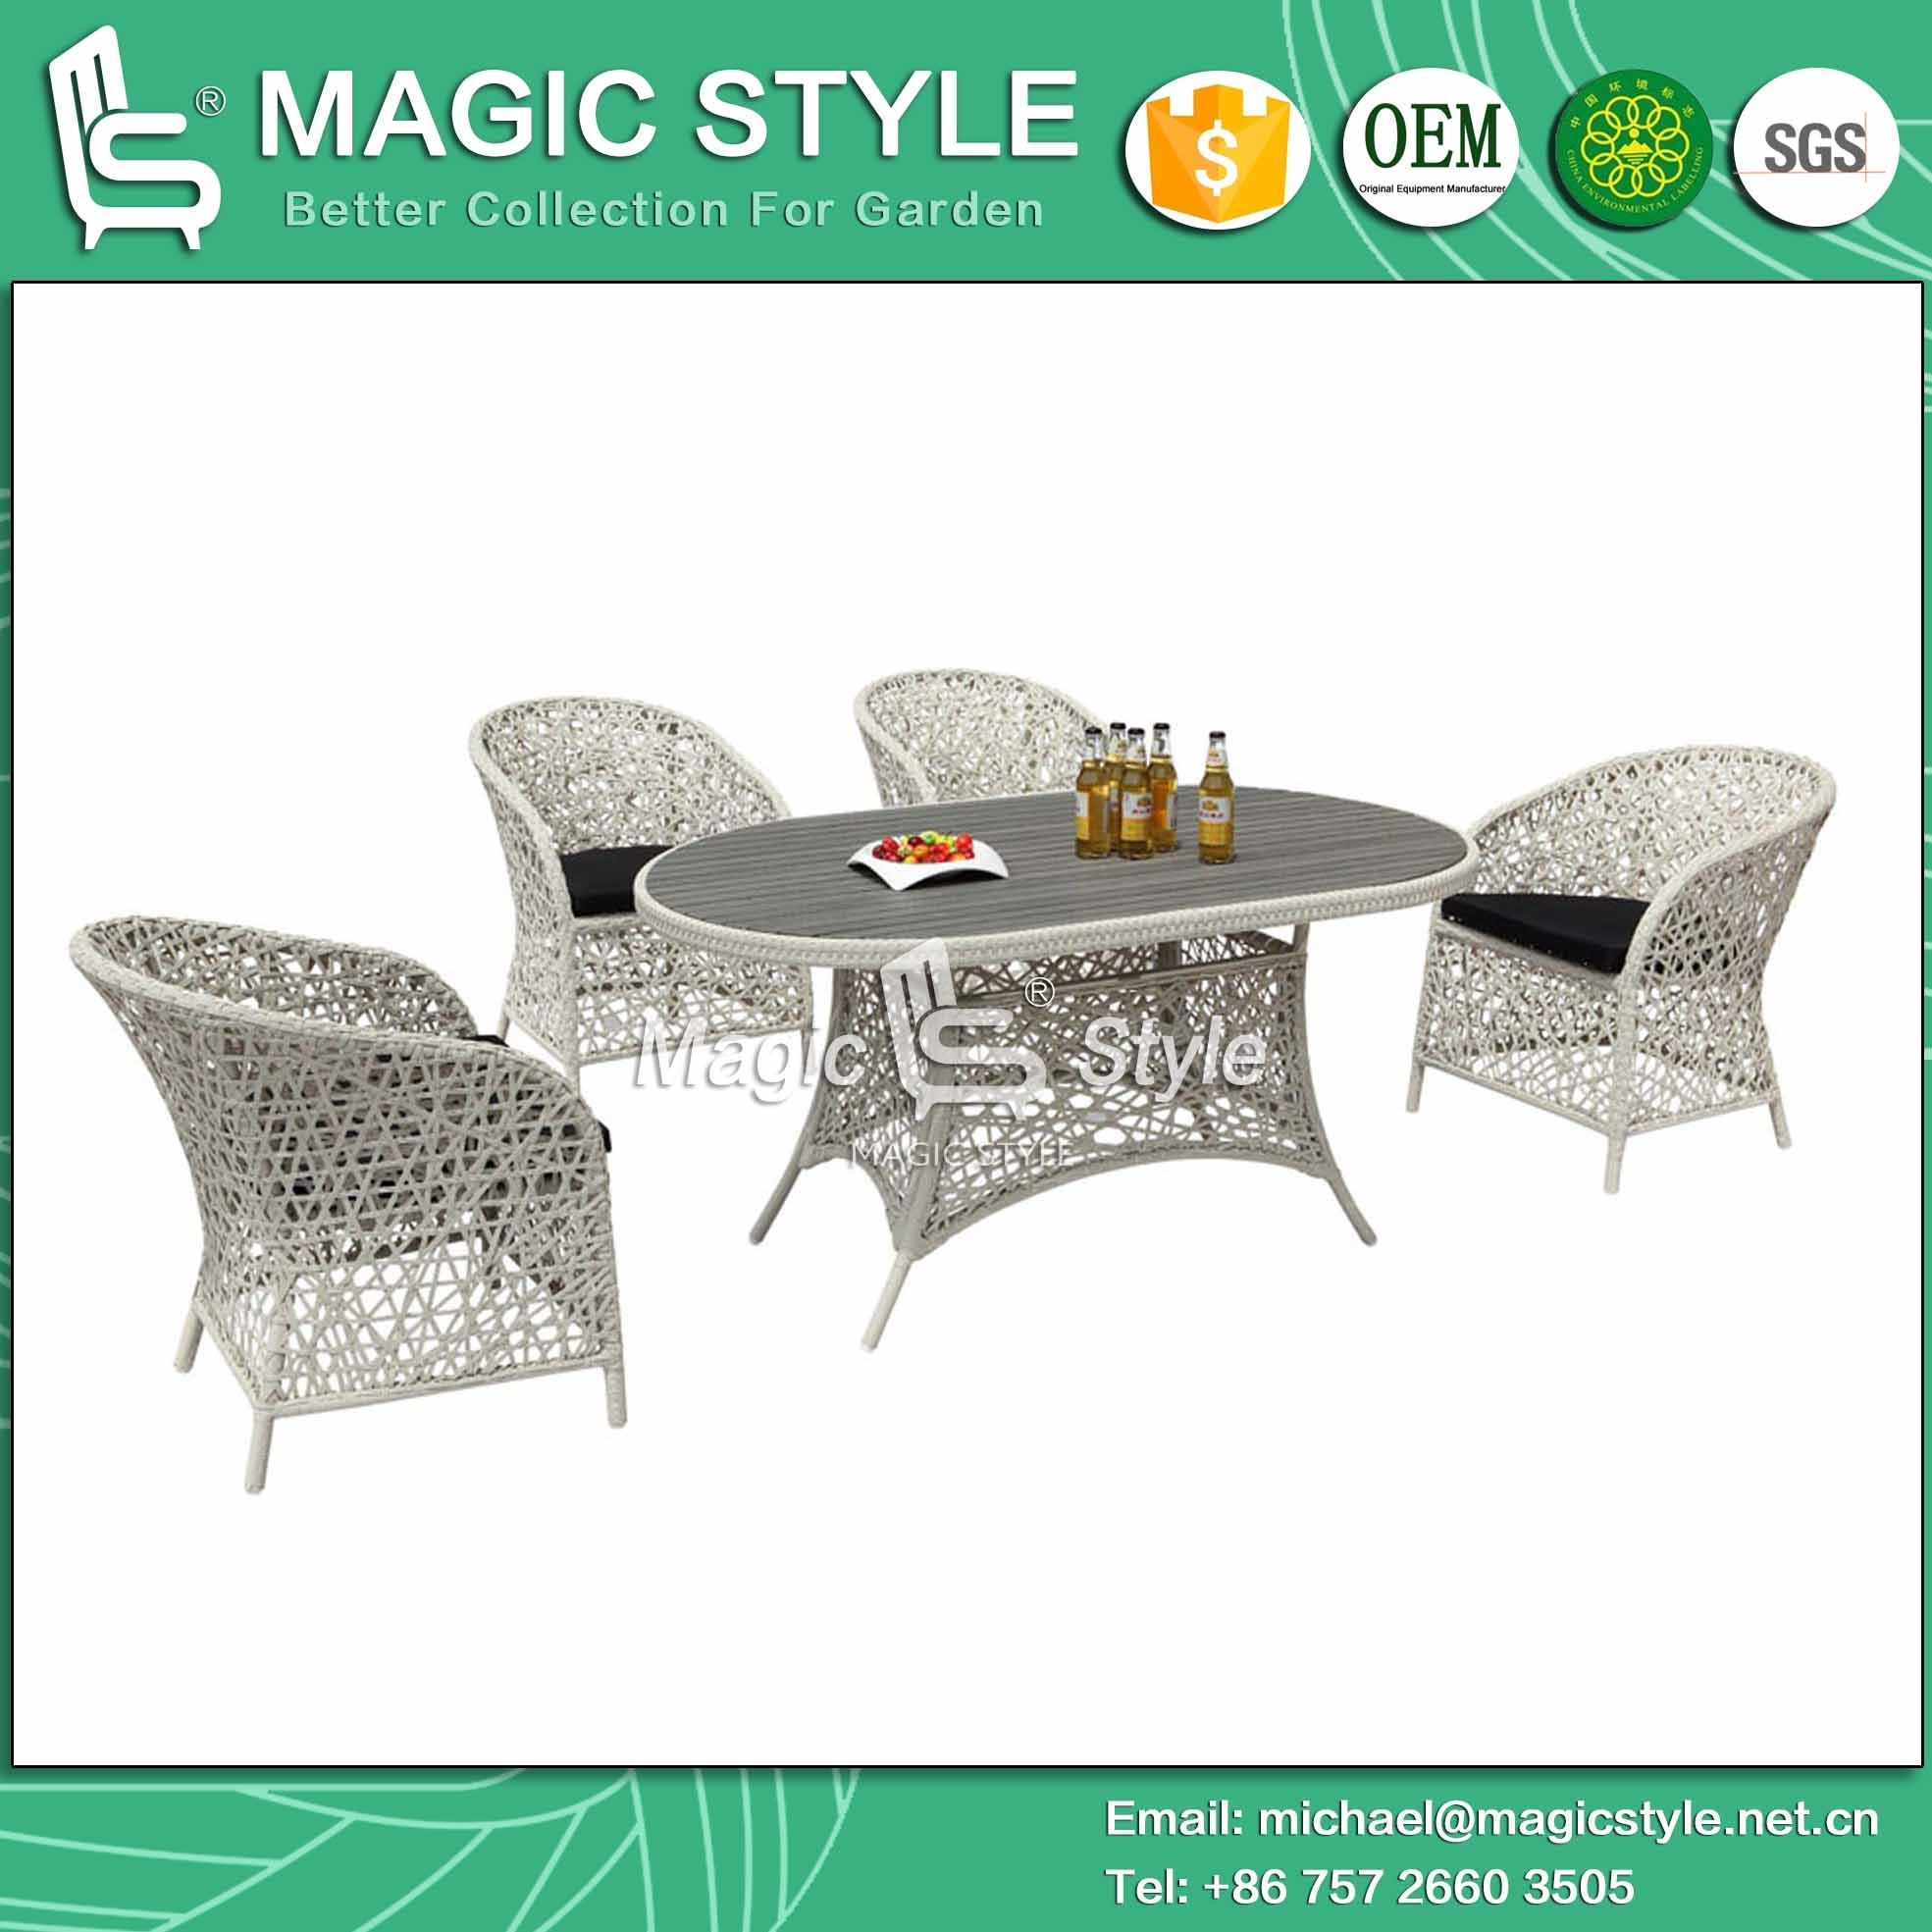 Outdoor Patio Furniture Dining Table China Outdoor Dining Set Rattan Chair Wicker Table Patio Furniture